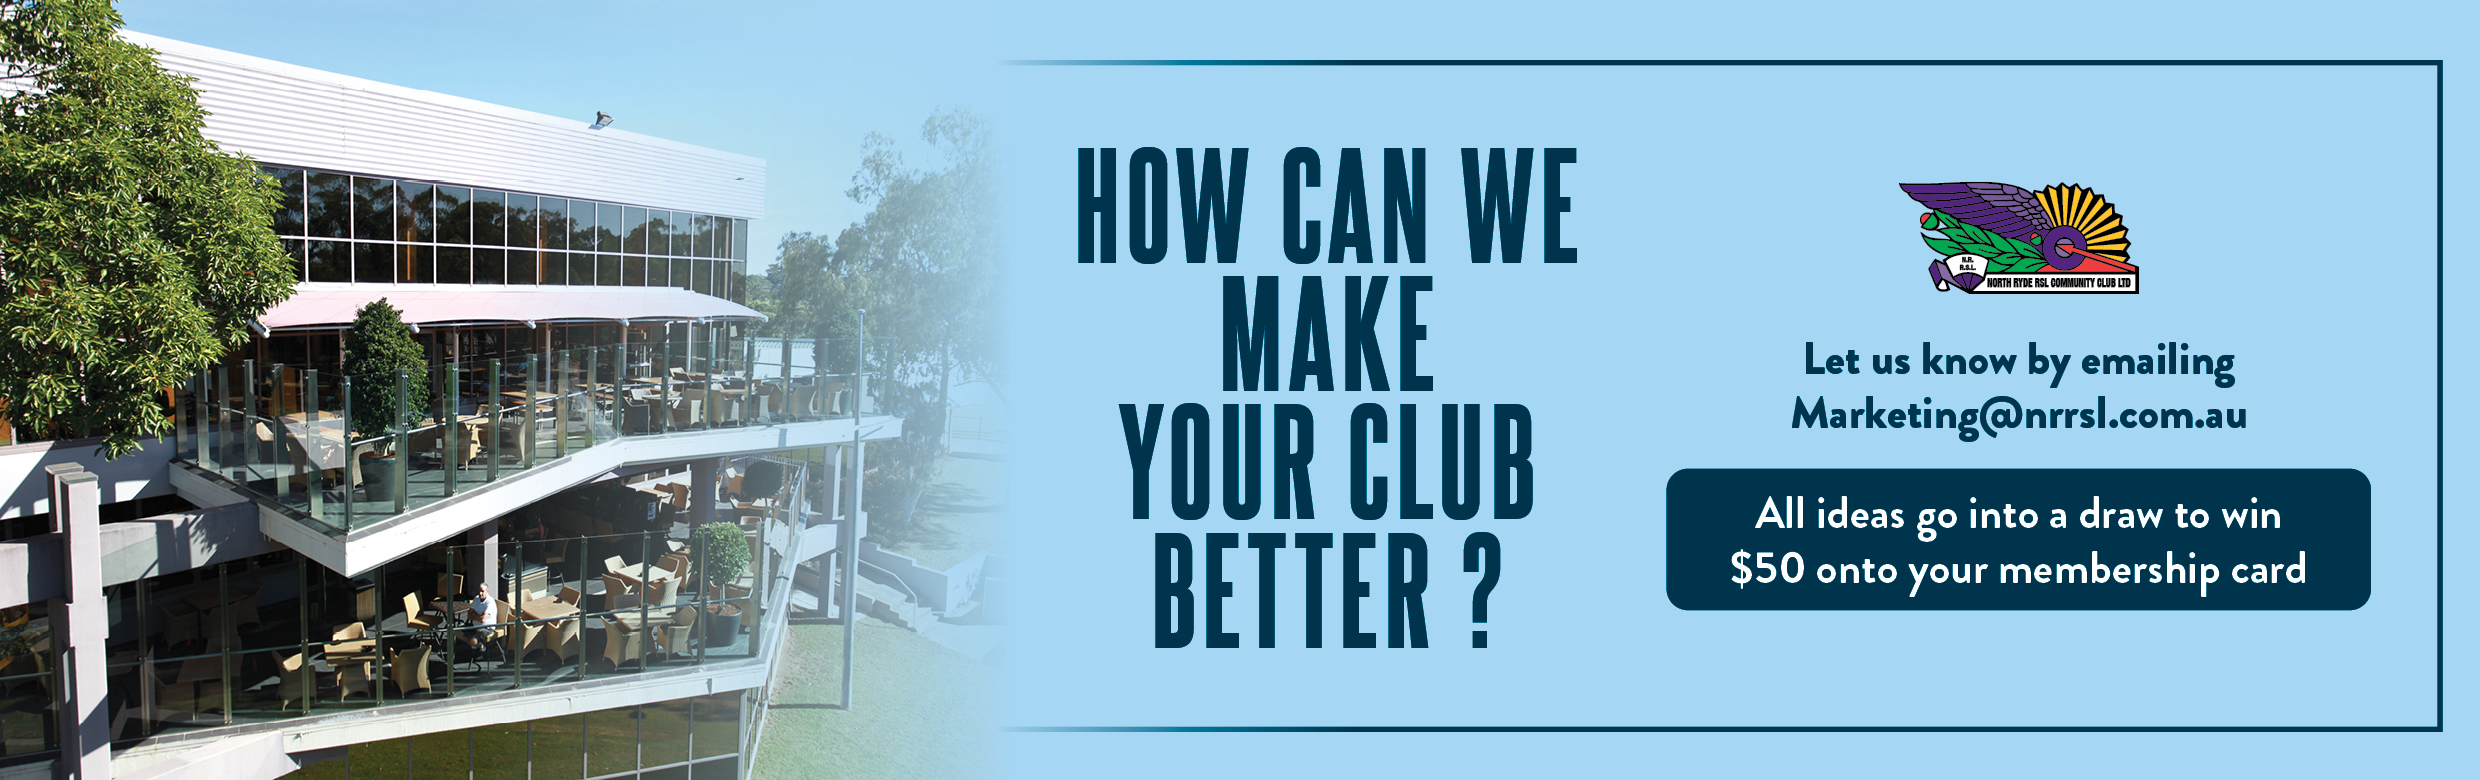 NRSL_How-can-we-make-the-Club-Better_2-Web-Banner-003